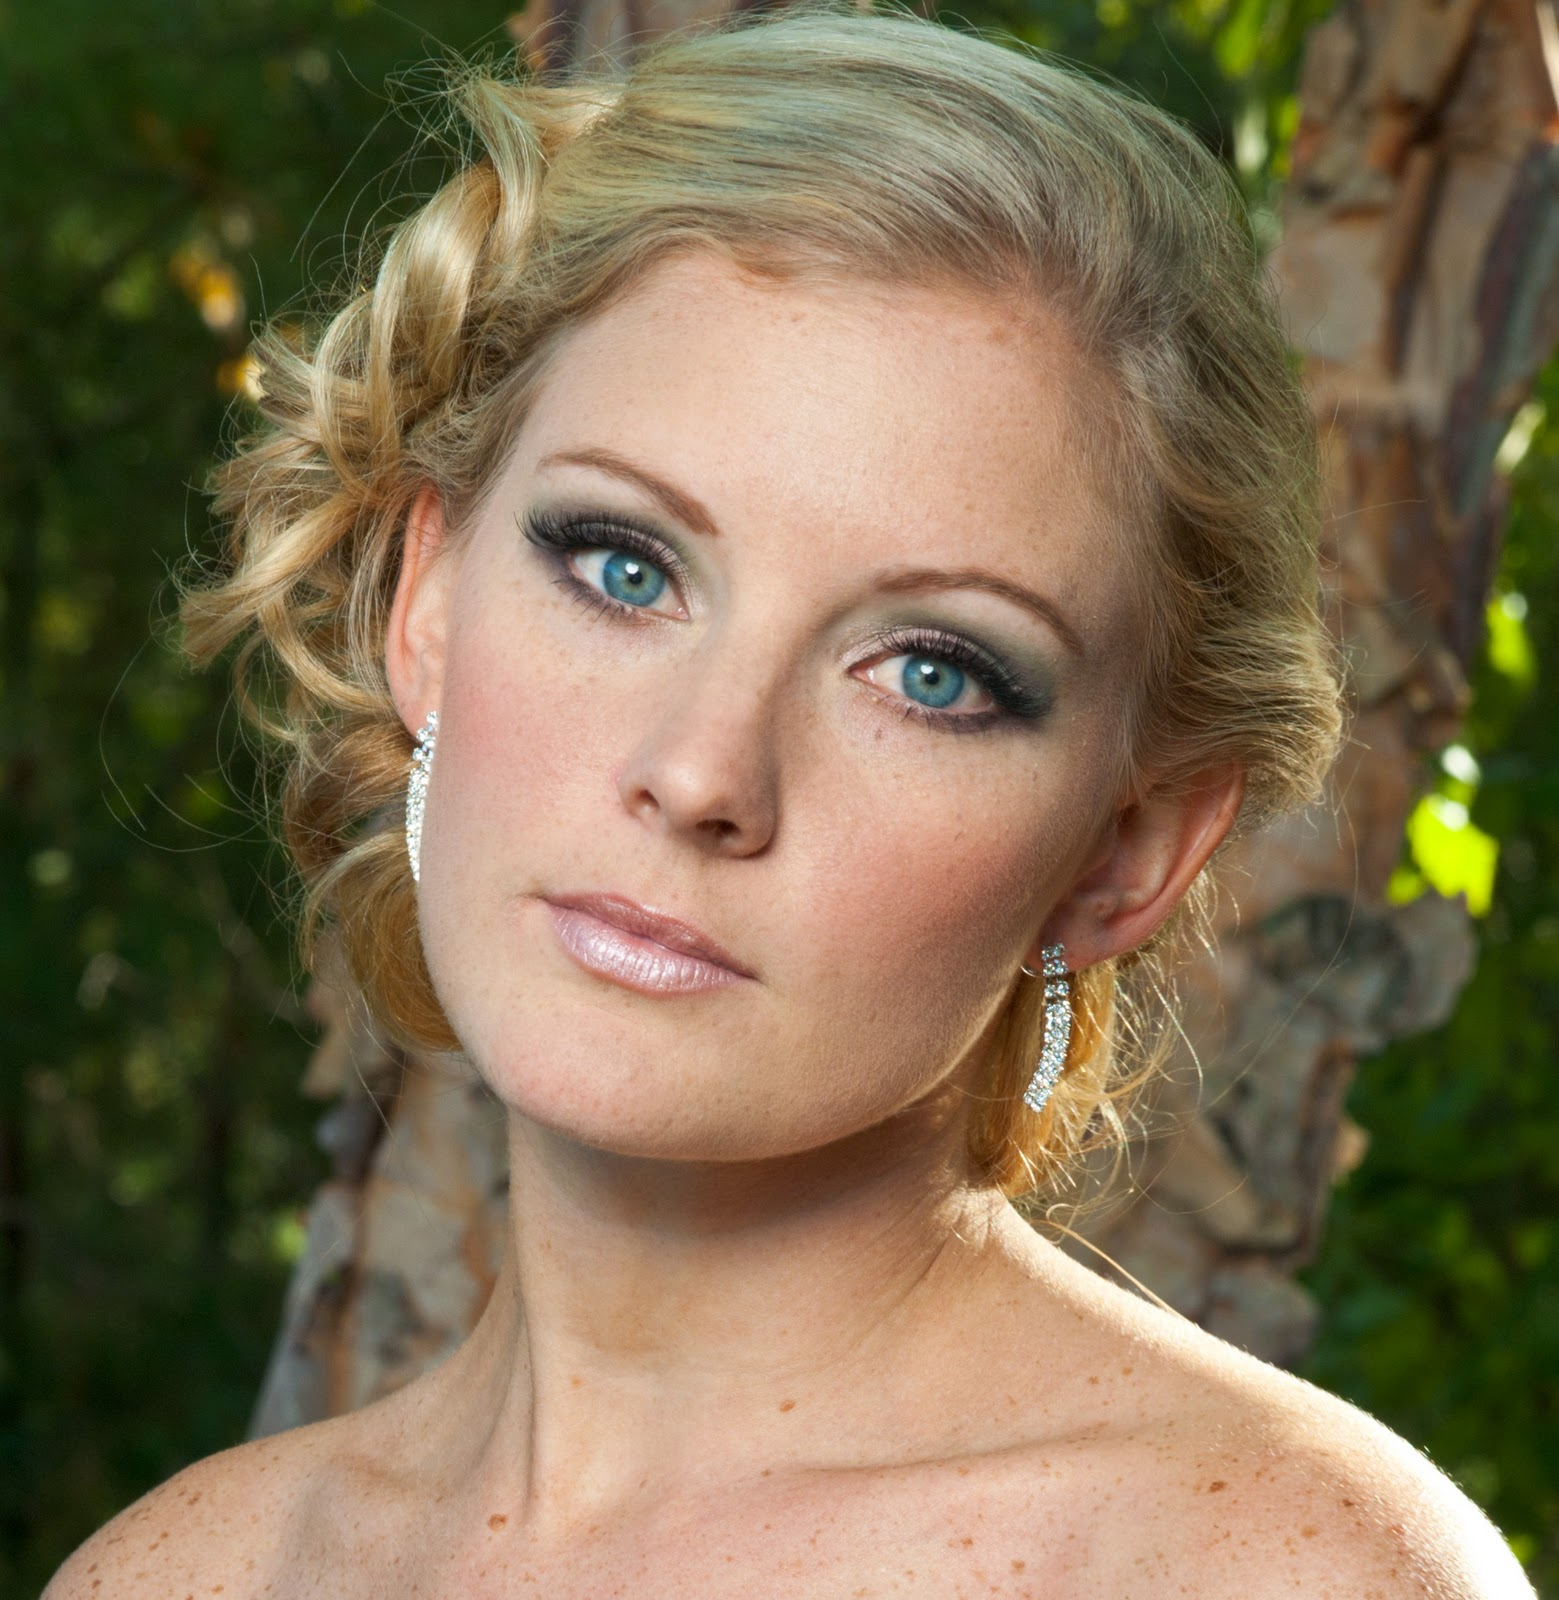 Bridal Makeup For Blue Eyes And Brown Hair : Makeup Tips For Blue Eyes And Blonde Hair And Fair Skin ...